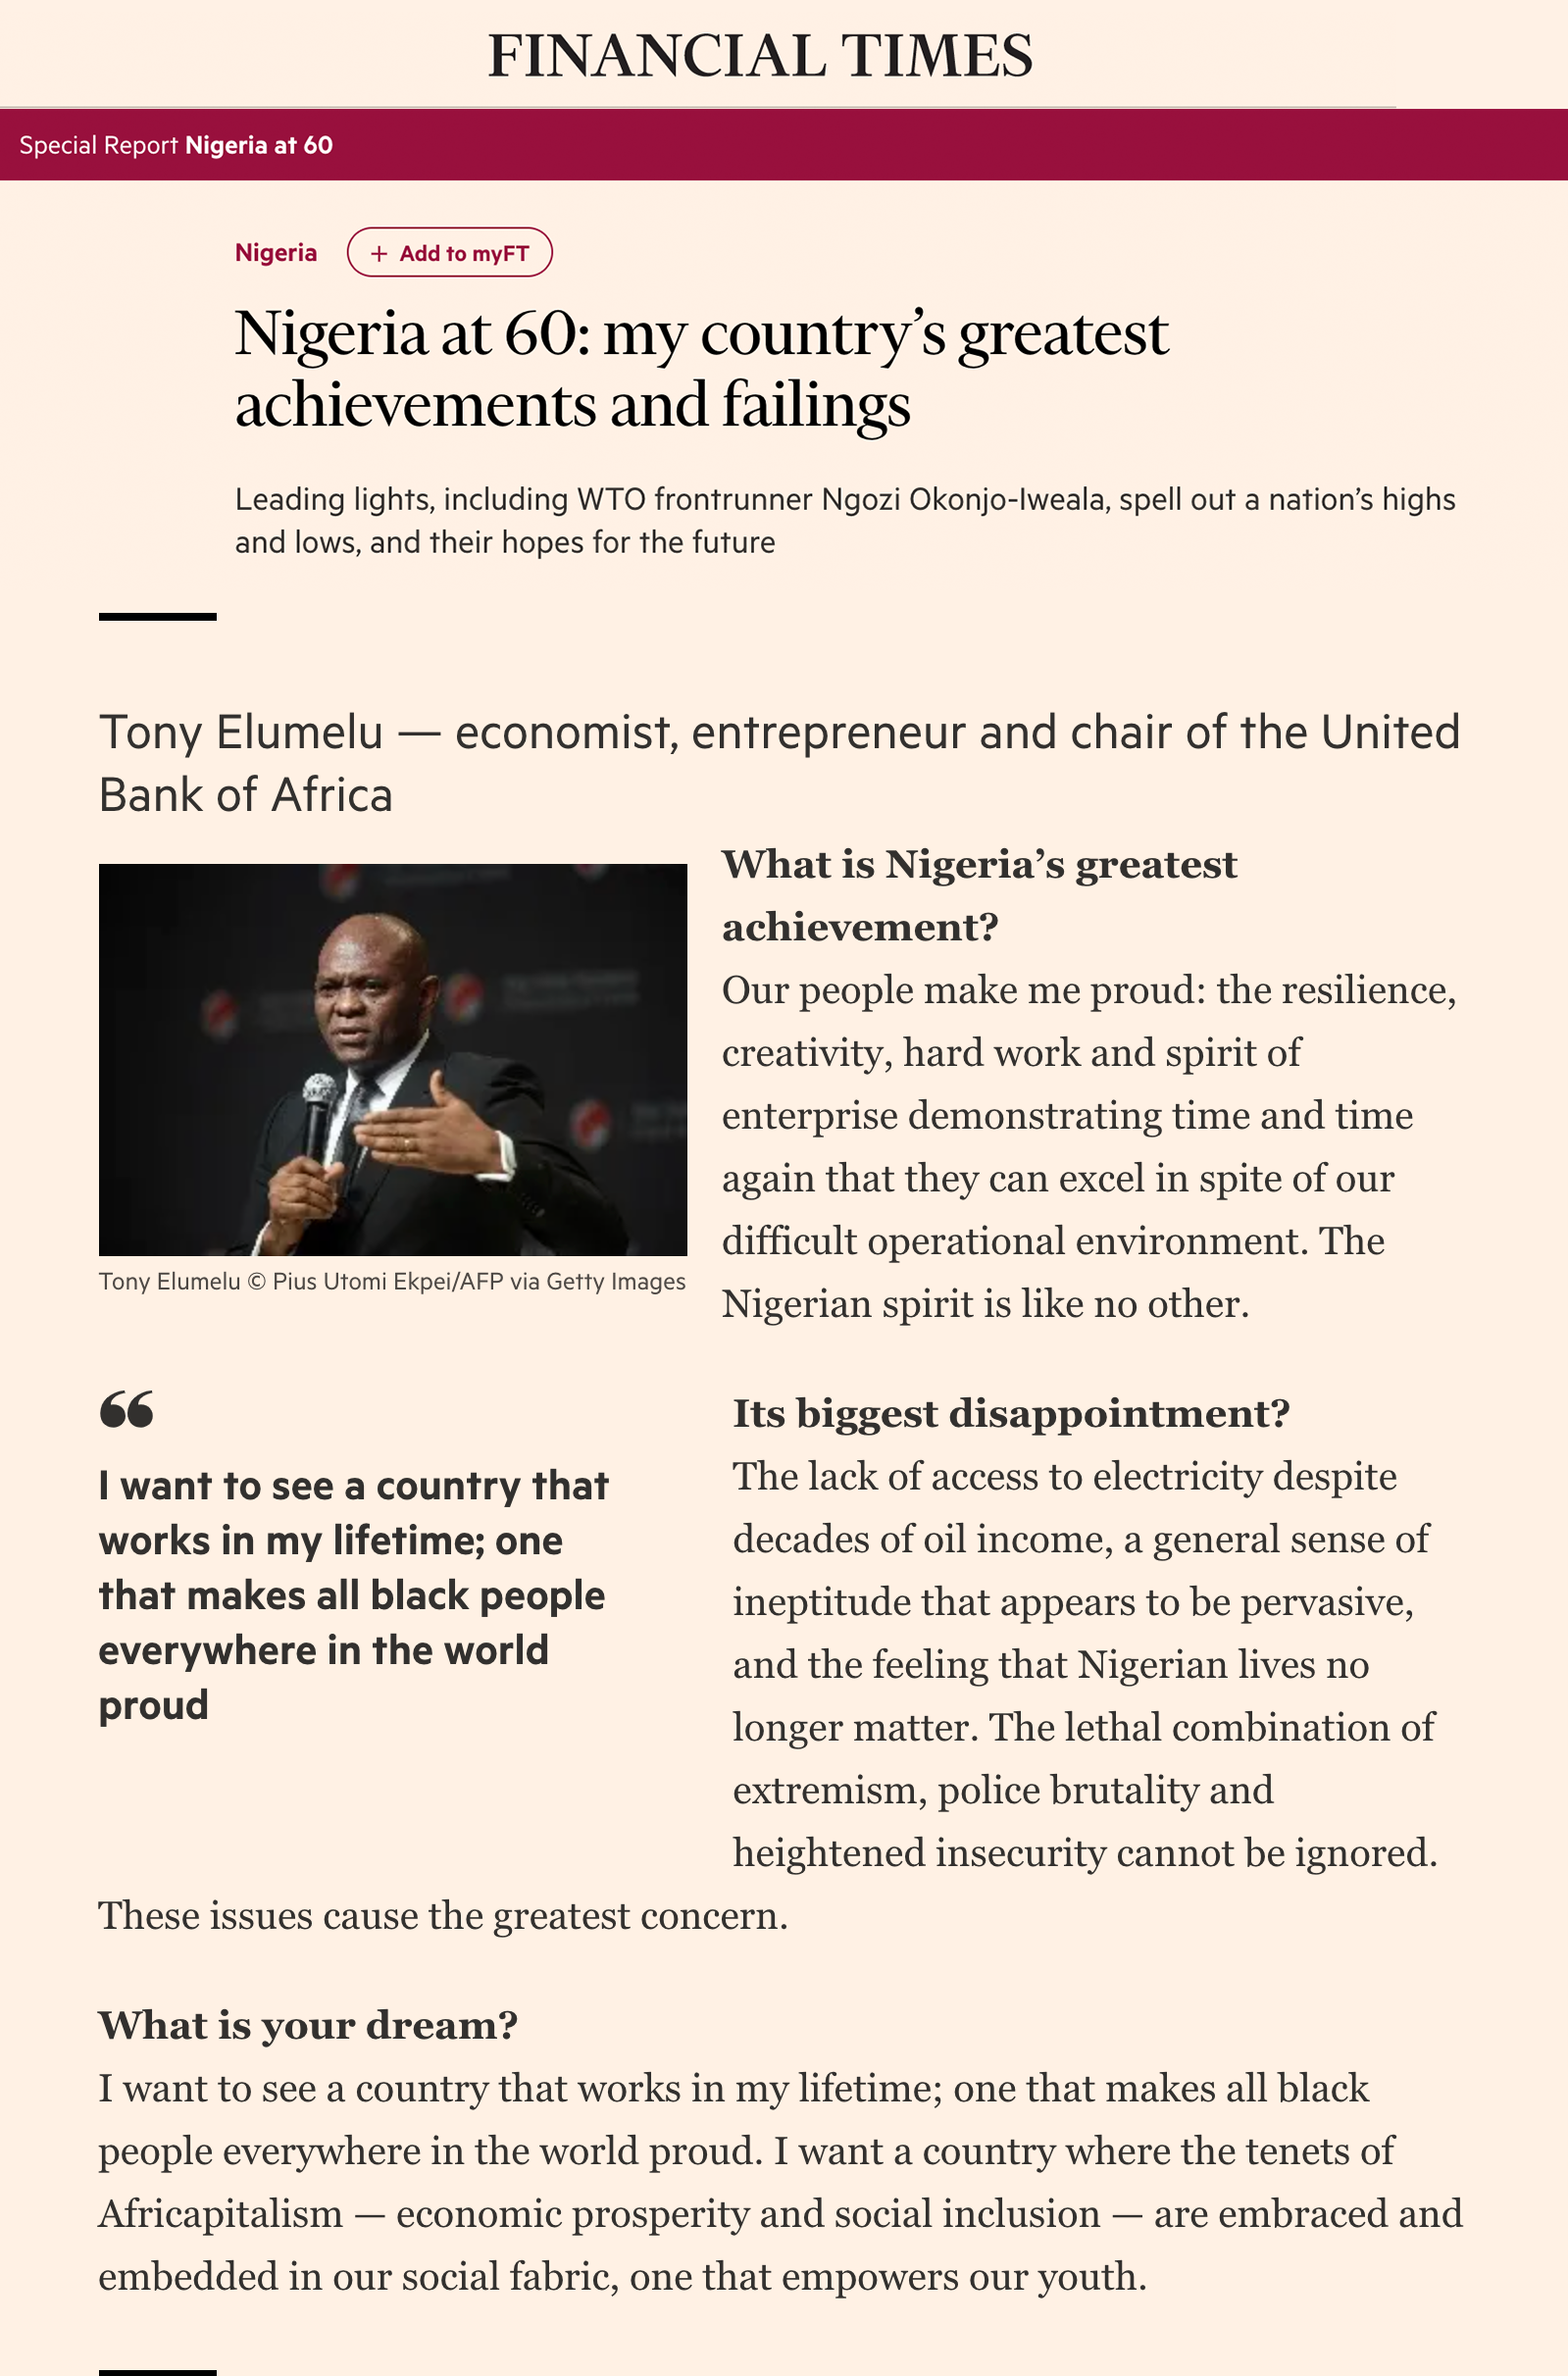 Financial times article by the Chairman of Heirs Holdings, Tony Elumelu